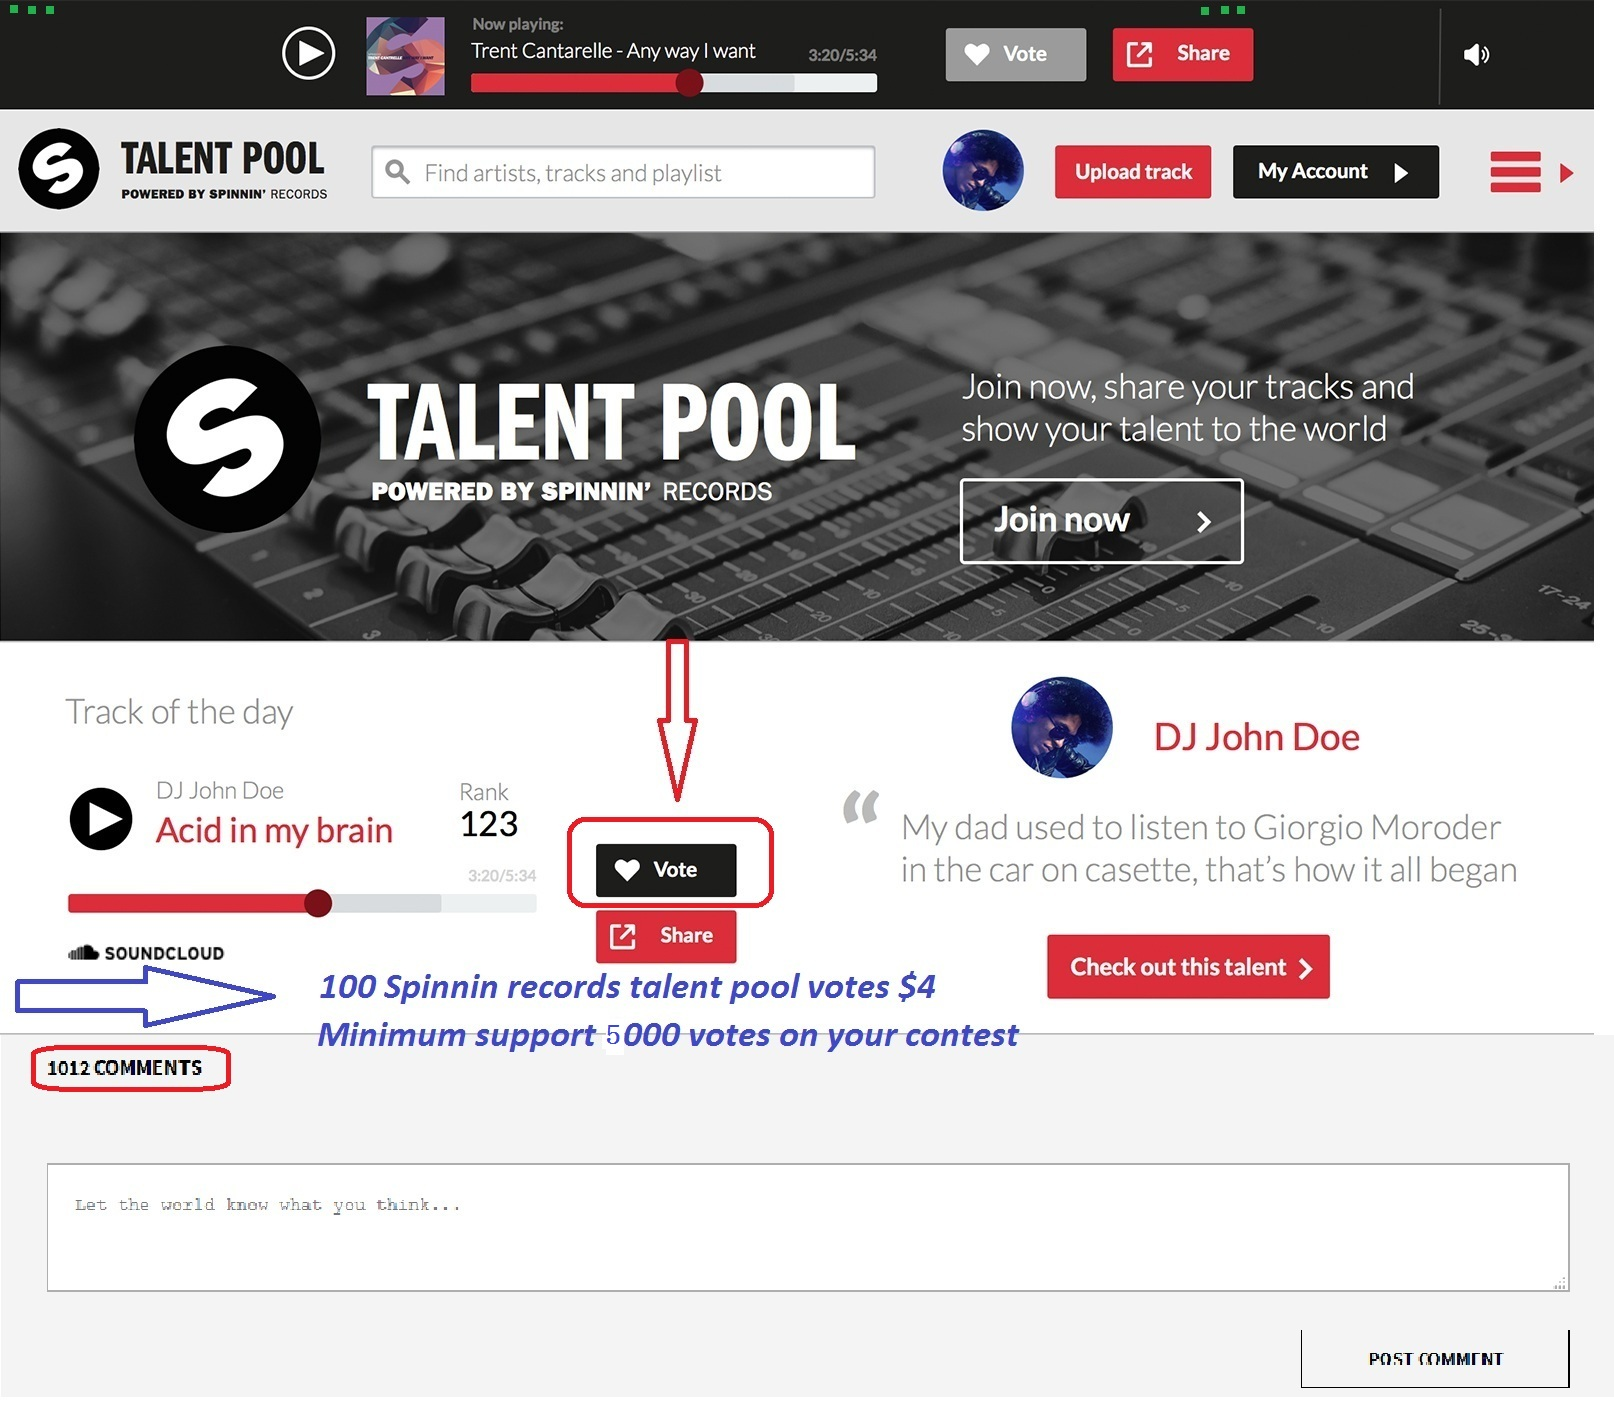 Promote 100 Spinnin Records Talent Pool Votes For Your Track